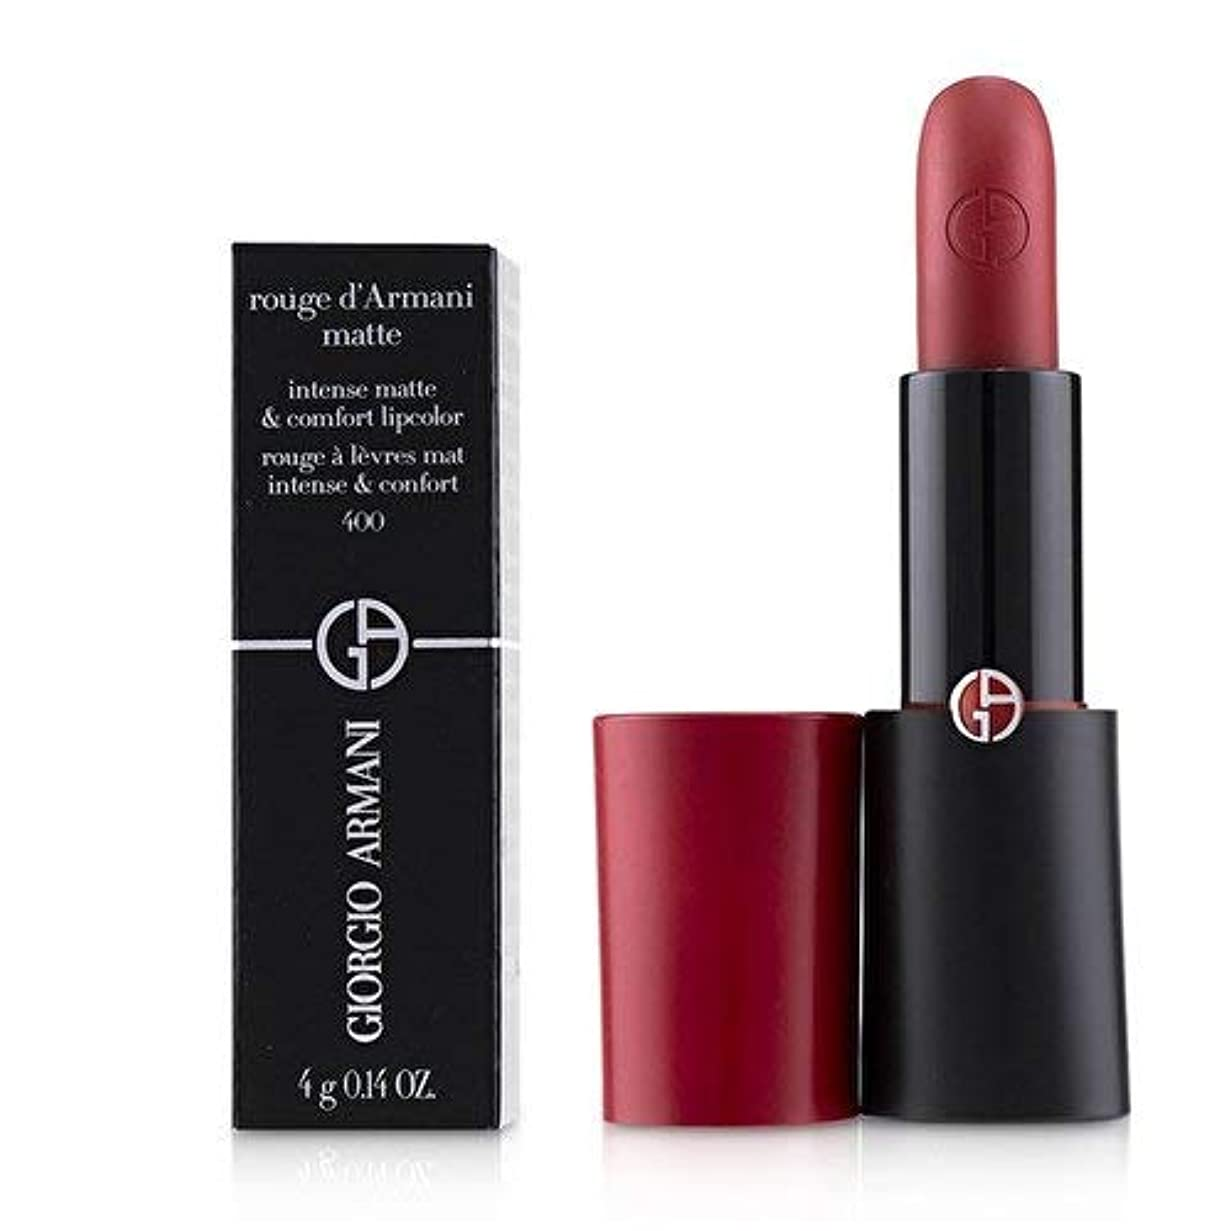 ジョルジオアルマーニ Rouge D'Armani Matte Intense Matte & Comfort Lipcolor - # 400 Four Hundred 4g/0.14oz並行輸入品